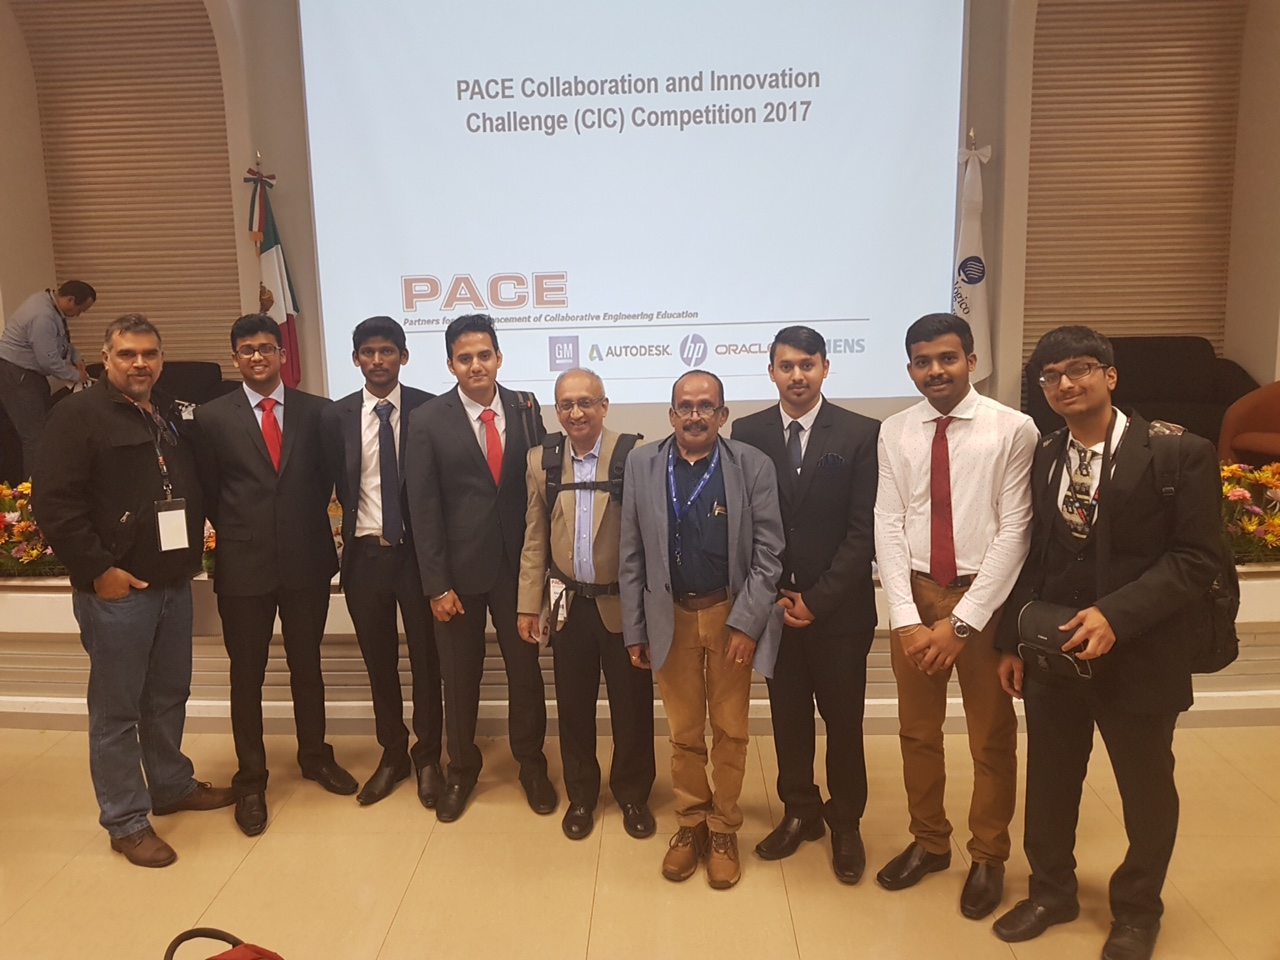 SJCE and pes cic teams along with mentors and a judge